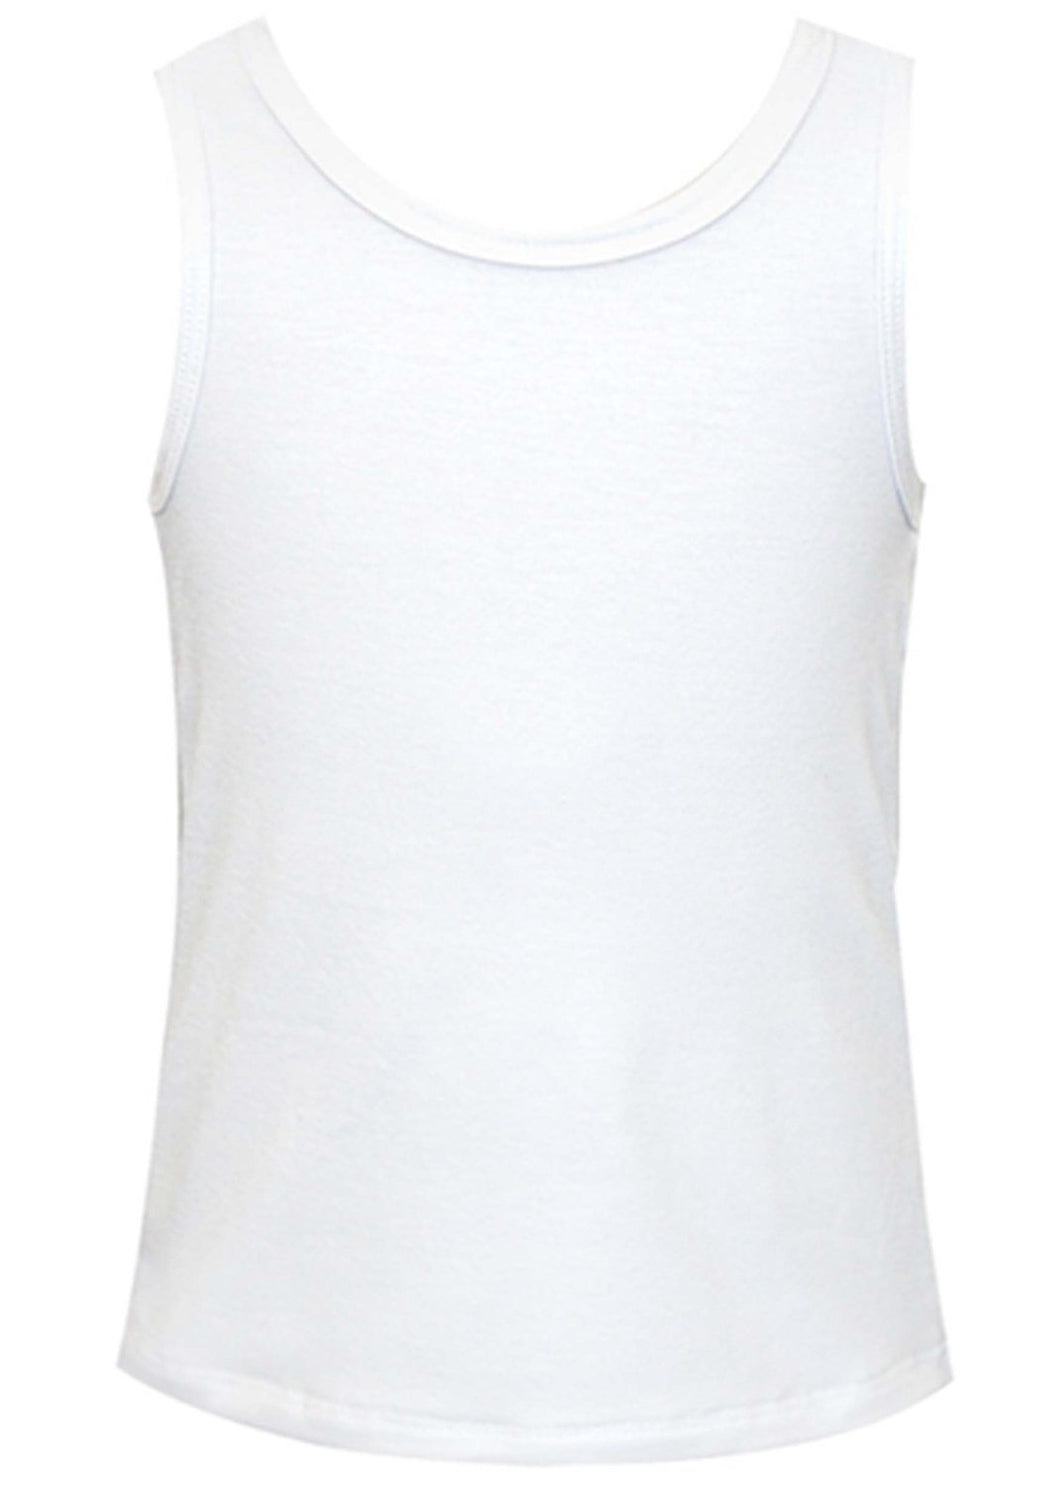 Basic Racer- White Tank Top